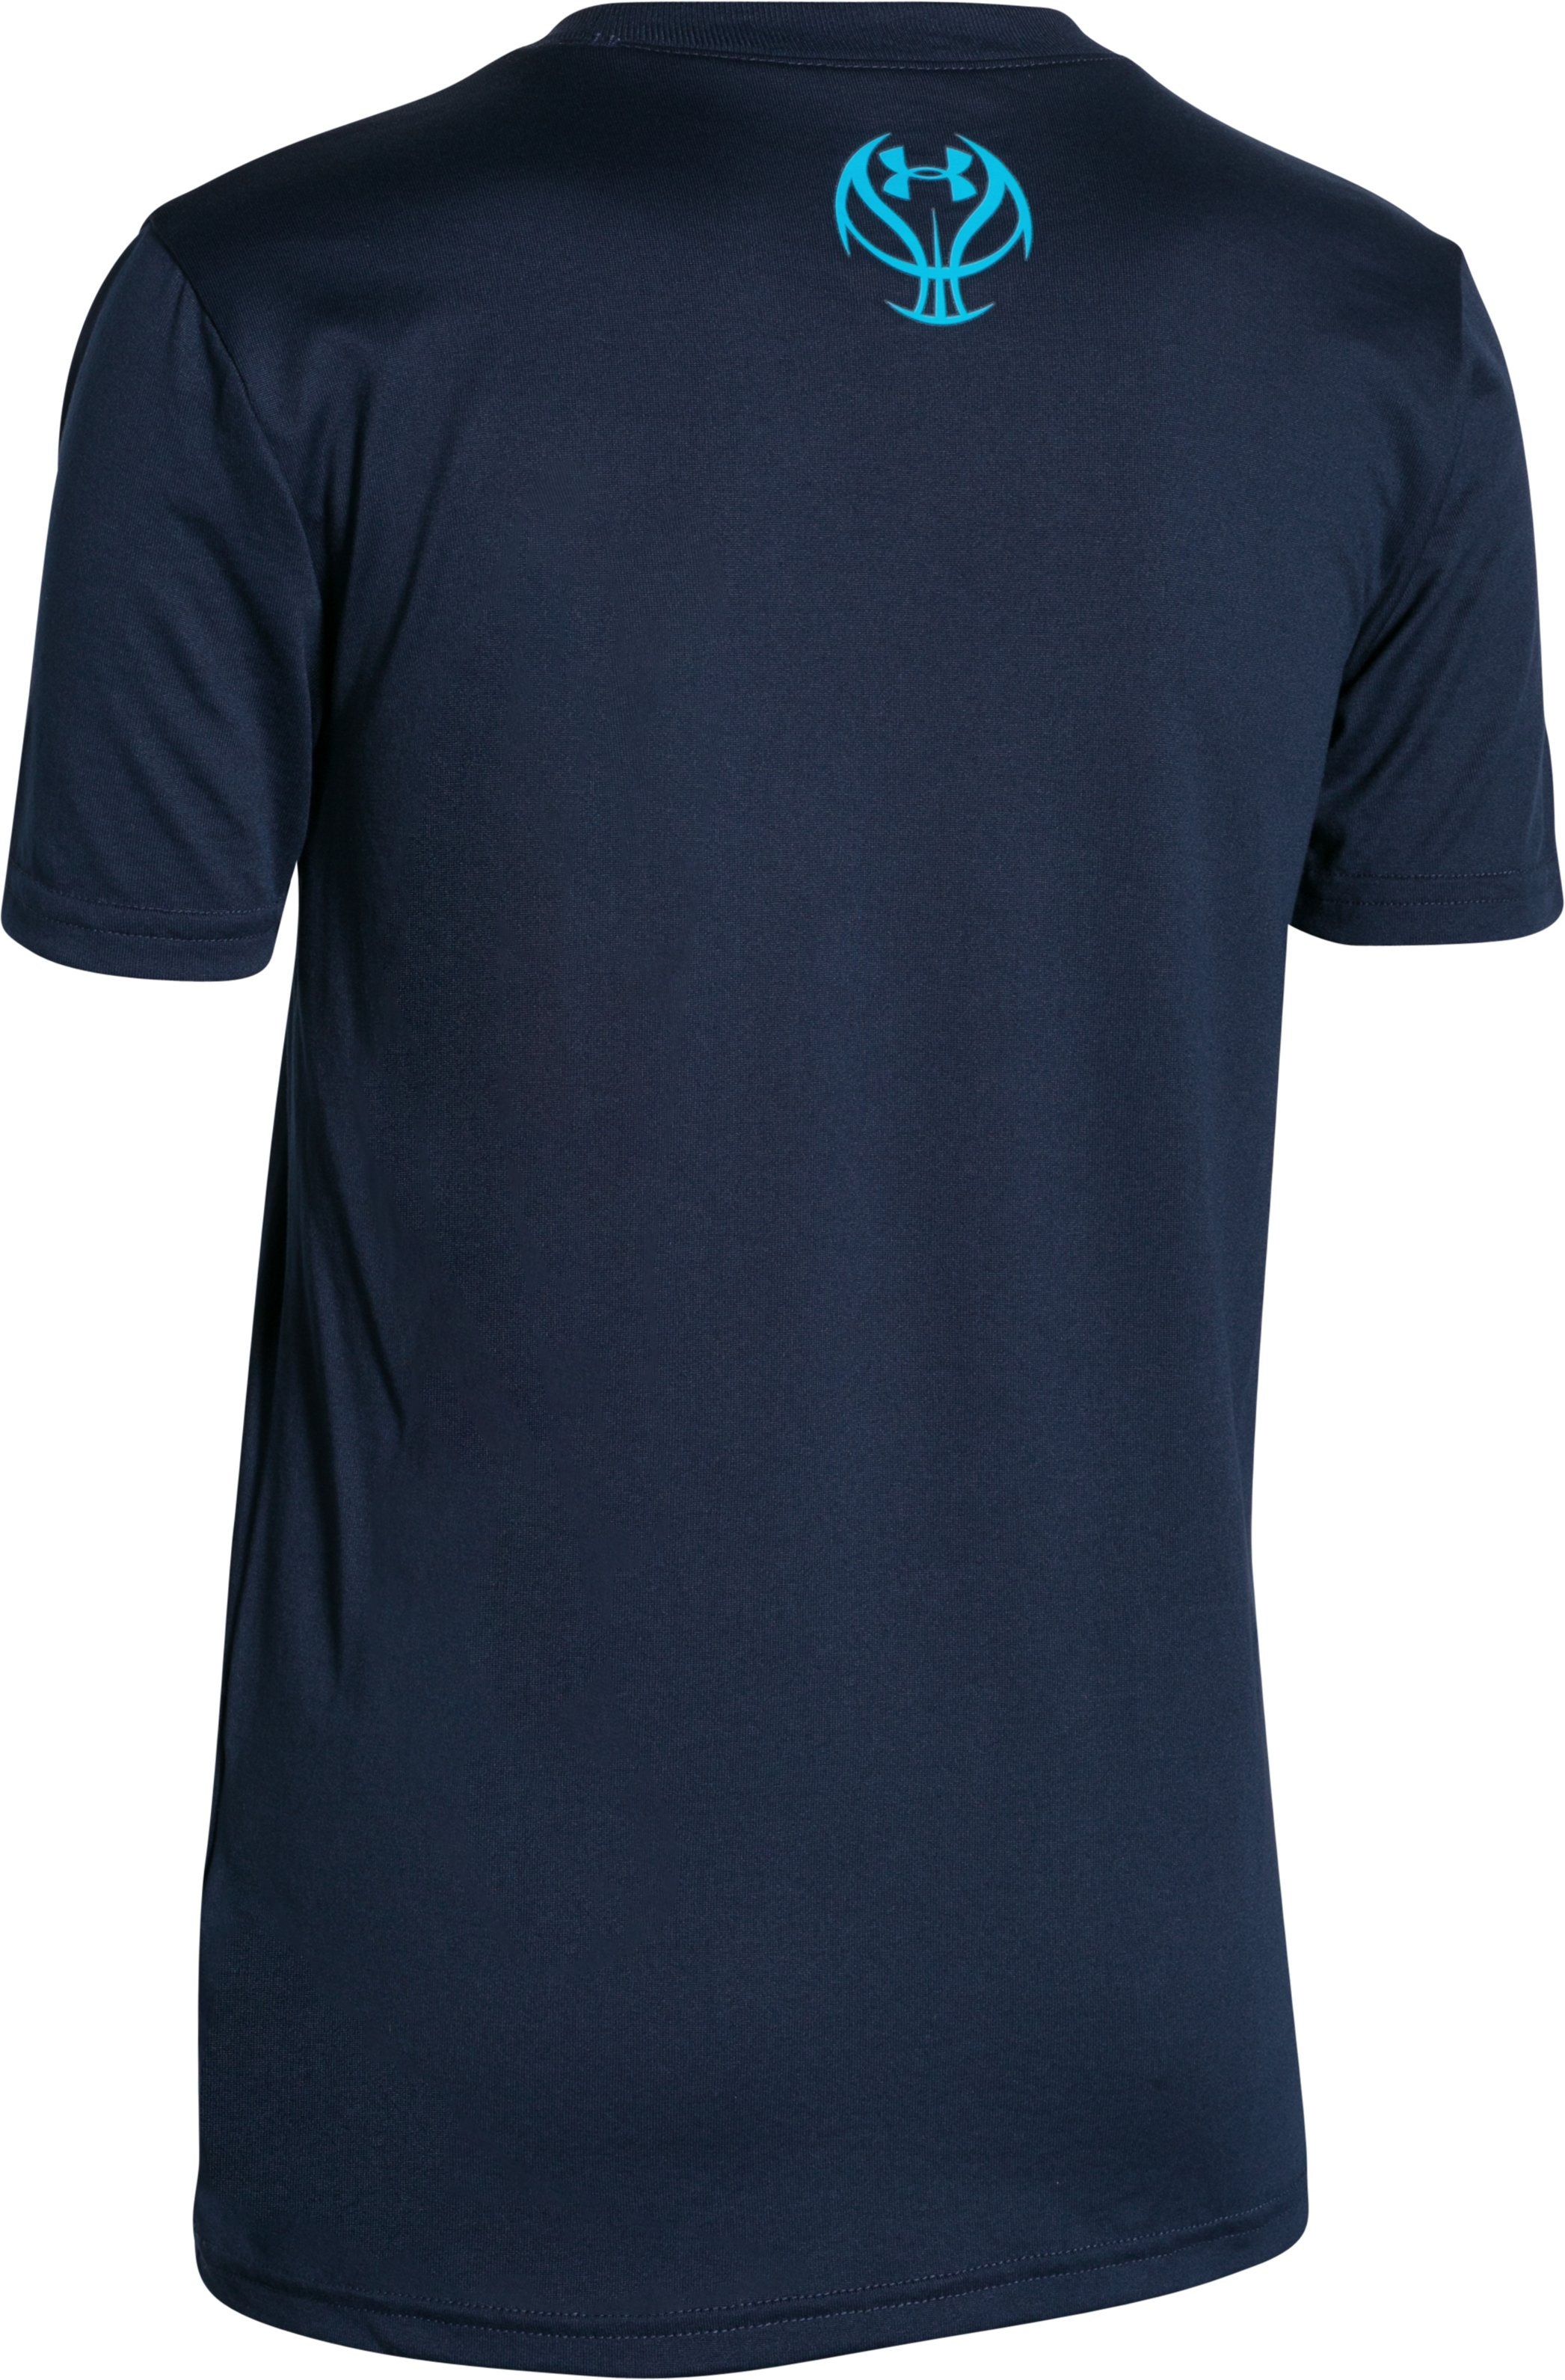 Boys' UA Basketball Logo T-Shirt, NAVY SEAL